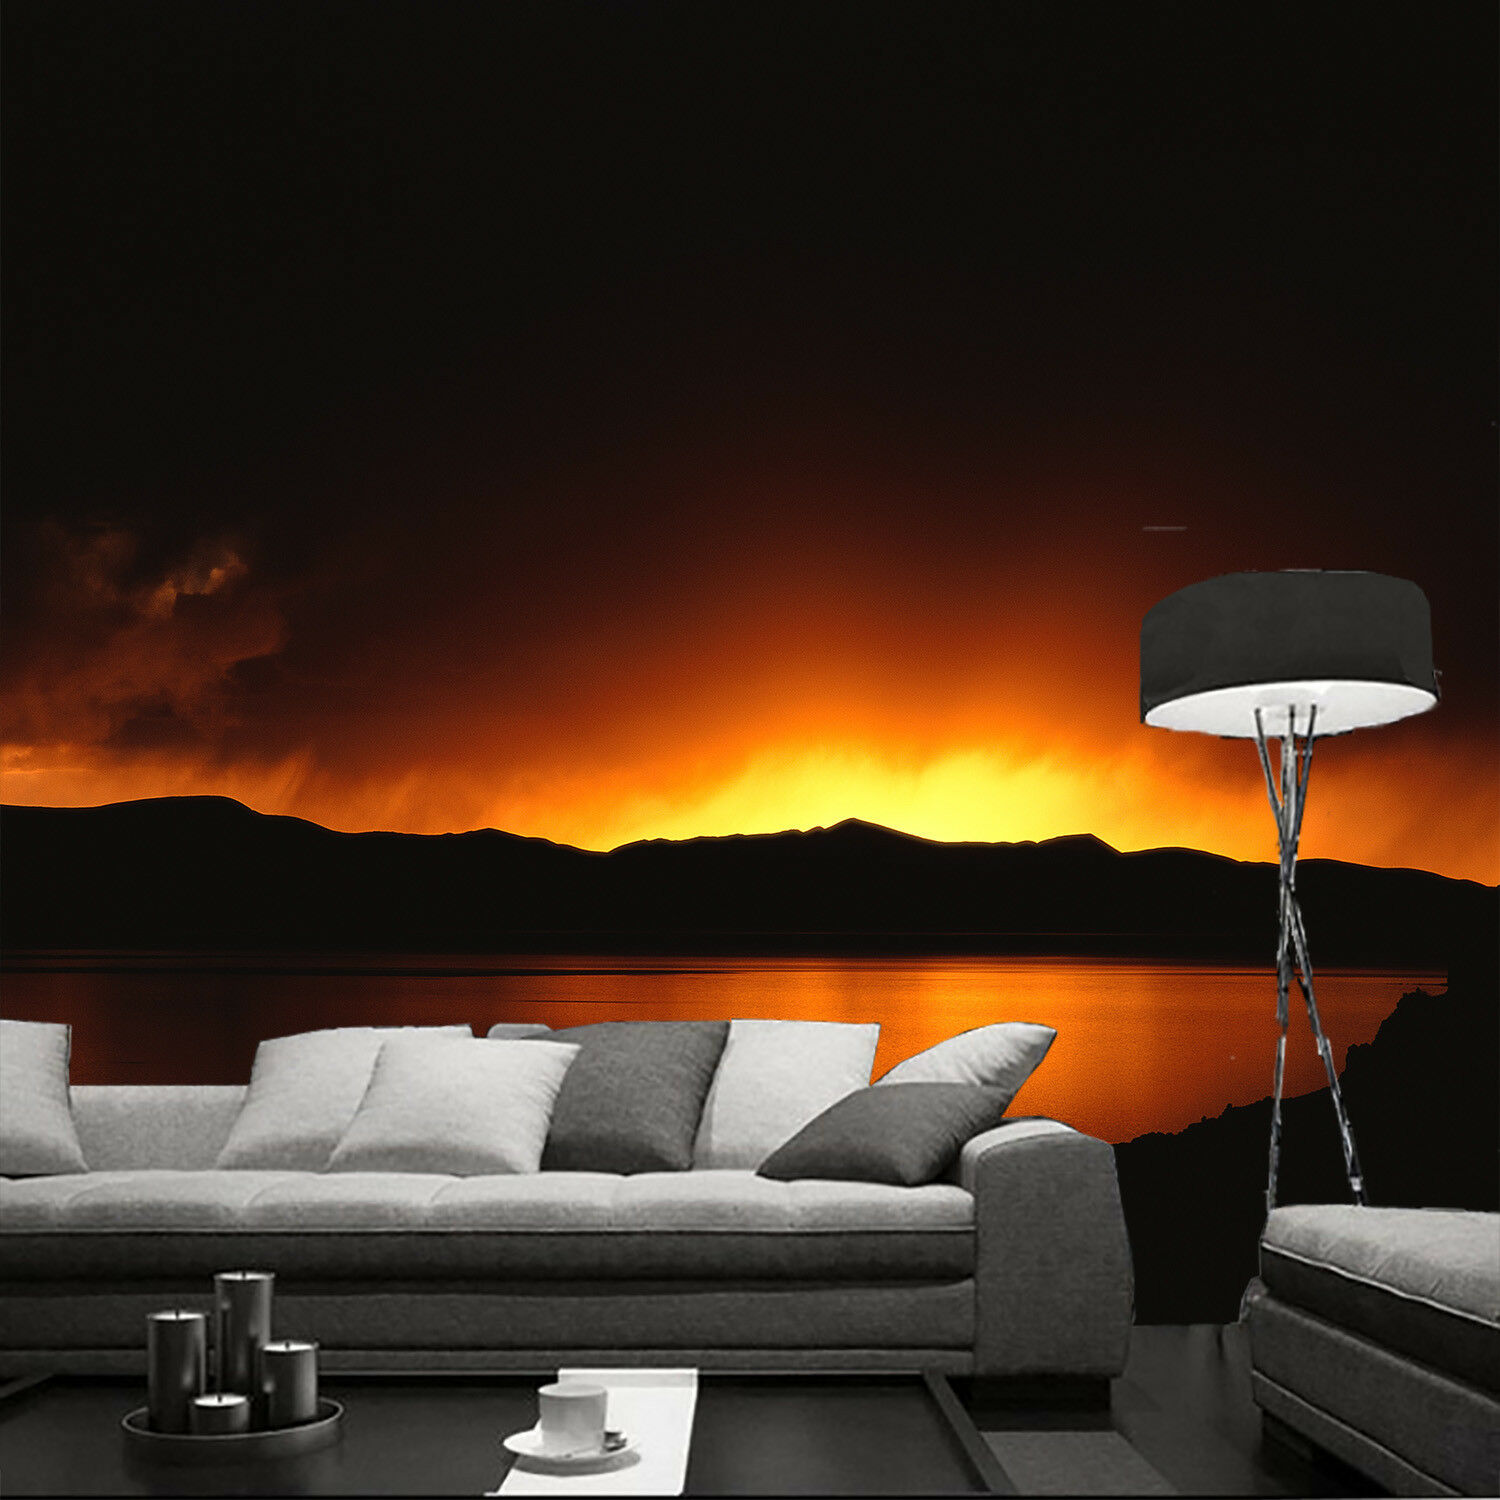 3D Sunset Sky 402 Wallpaper Murals Wall Print Wall Mural AJ WALL AU Summer